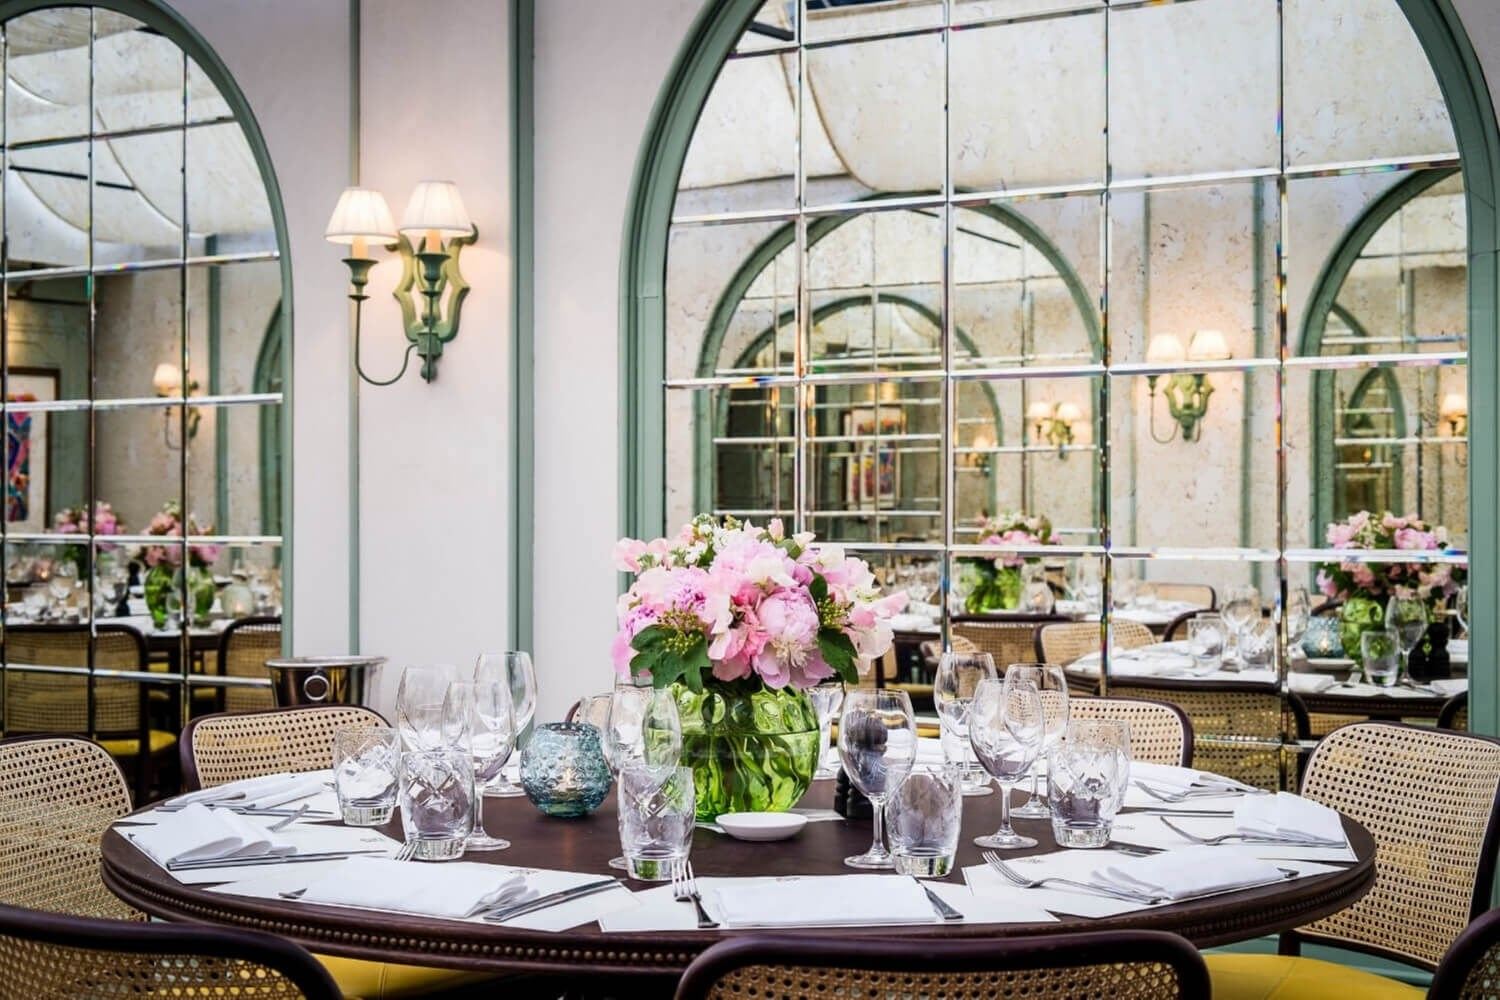 Daphne's is the ideal restaurant for special occasions in Kensington